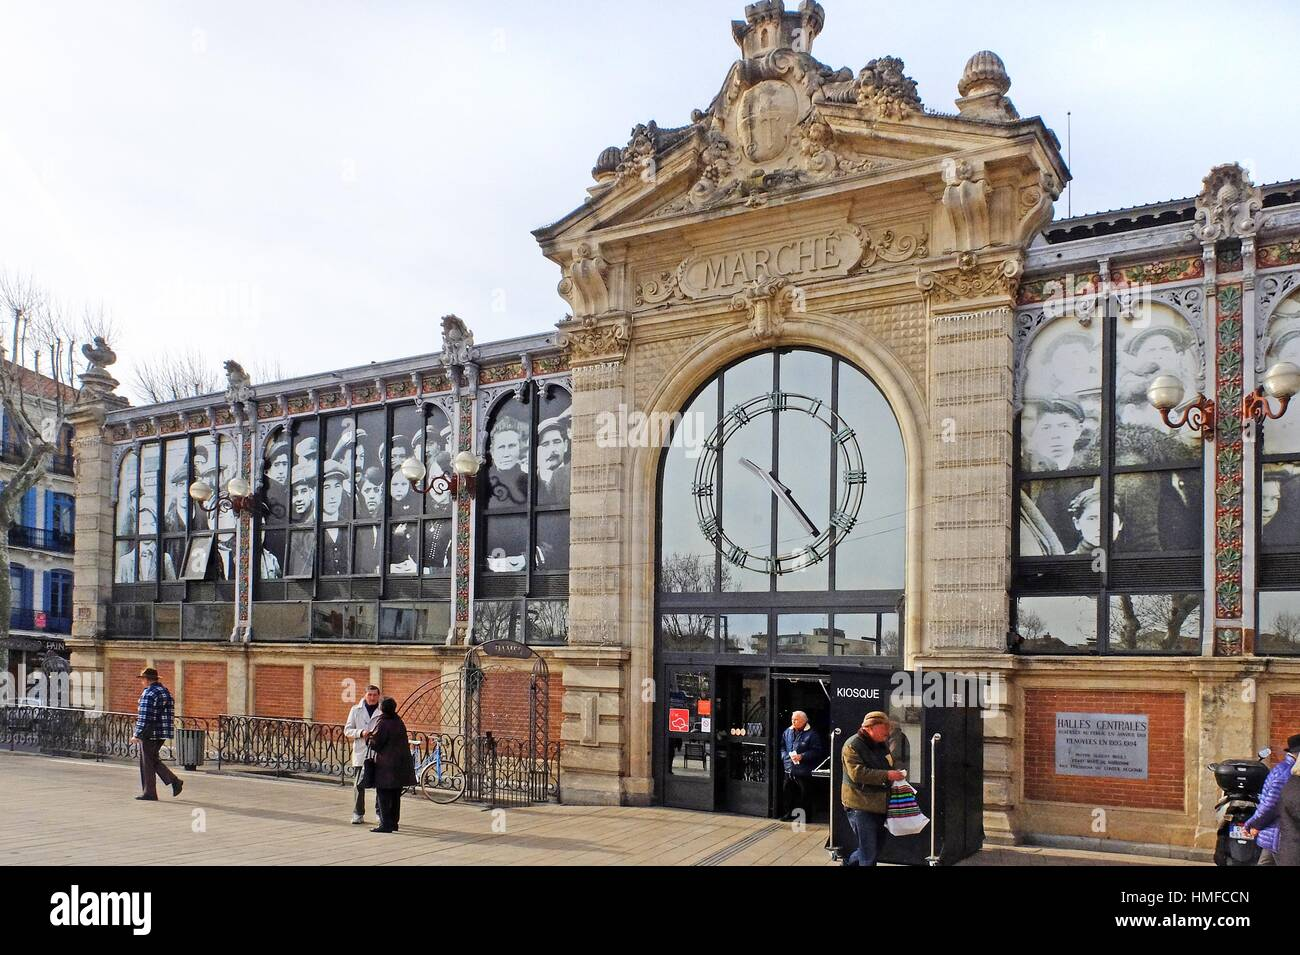 The windows of the ''Halles de Narbonne'' are decorated with photographic images of the people of - Stock Image